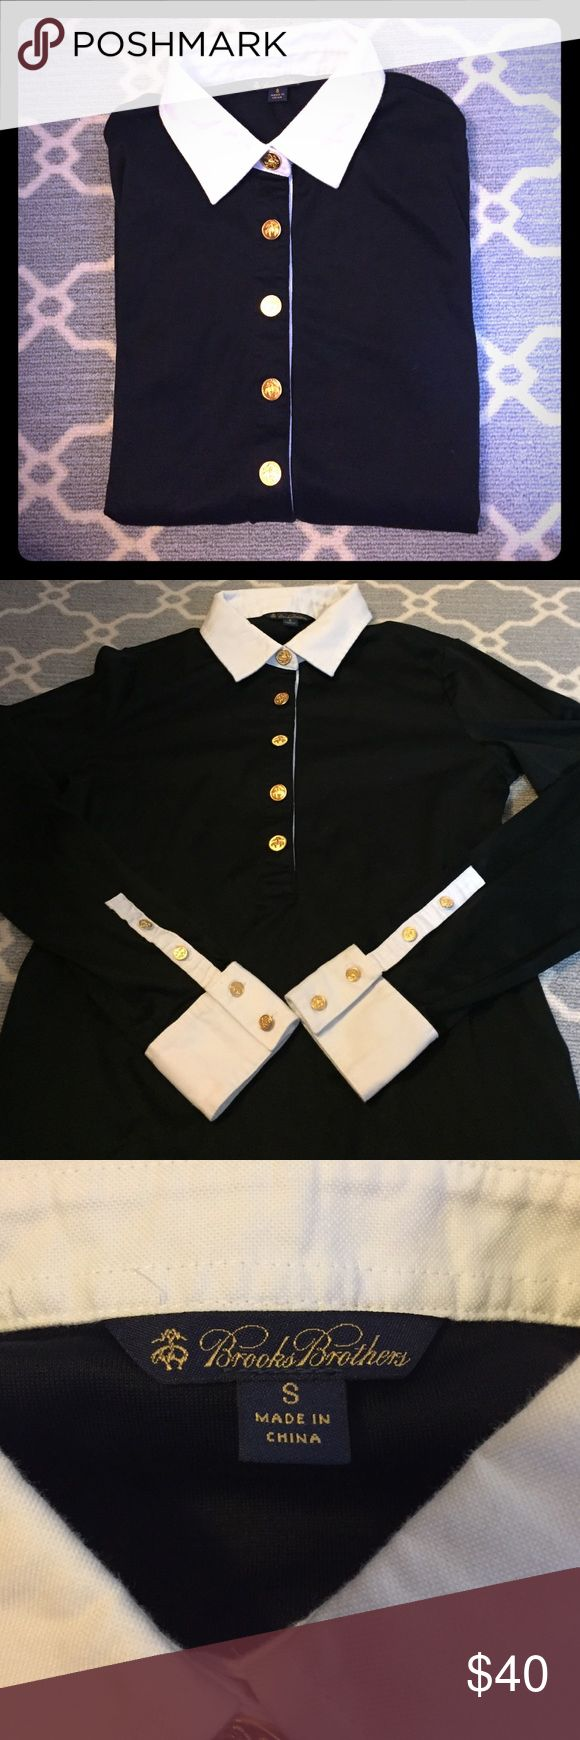 Brooks Brothers Polo Shirt Brooks Brothers black Cotton Polo shirt with gold buttons and white collar. 100% cotton, worn once and in great shape. Brooks Brothers Tops Button Down Shirts